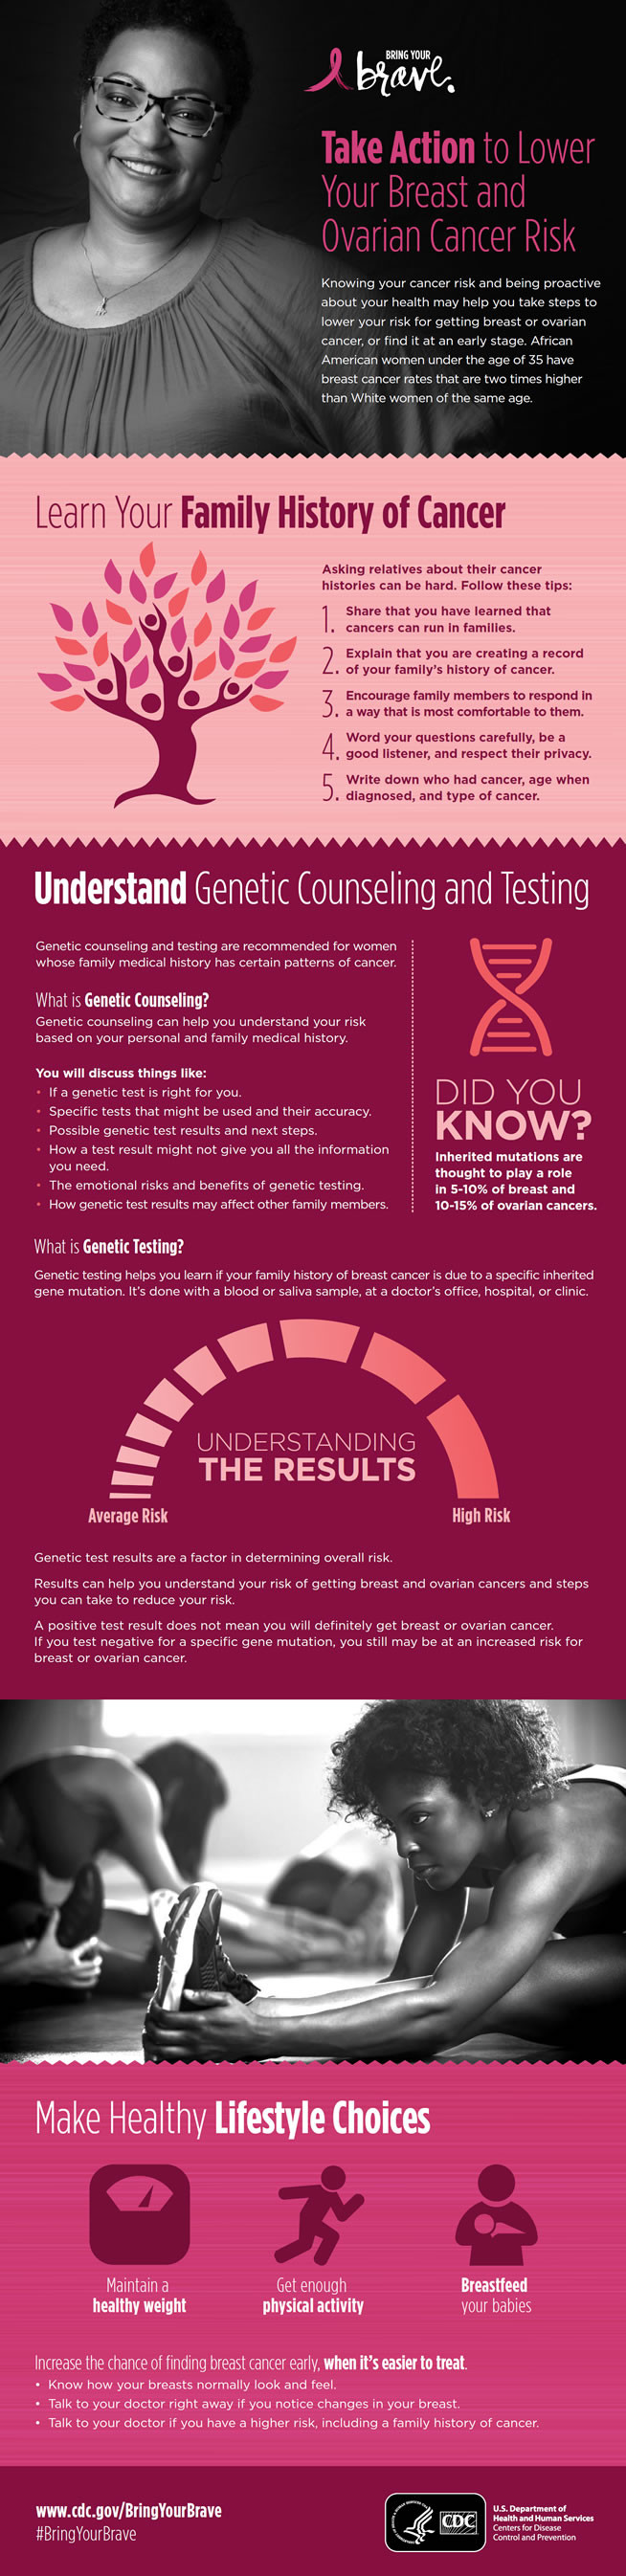 CDC Breast Cancer Awareness Graphic